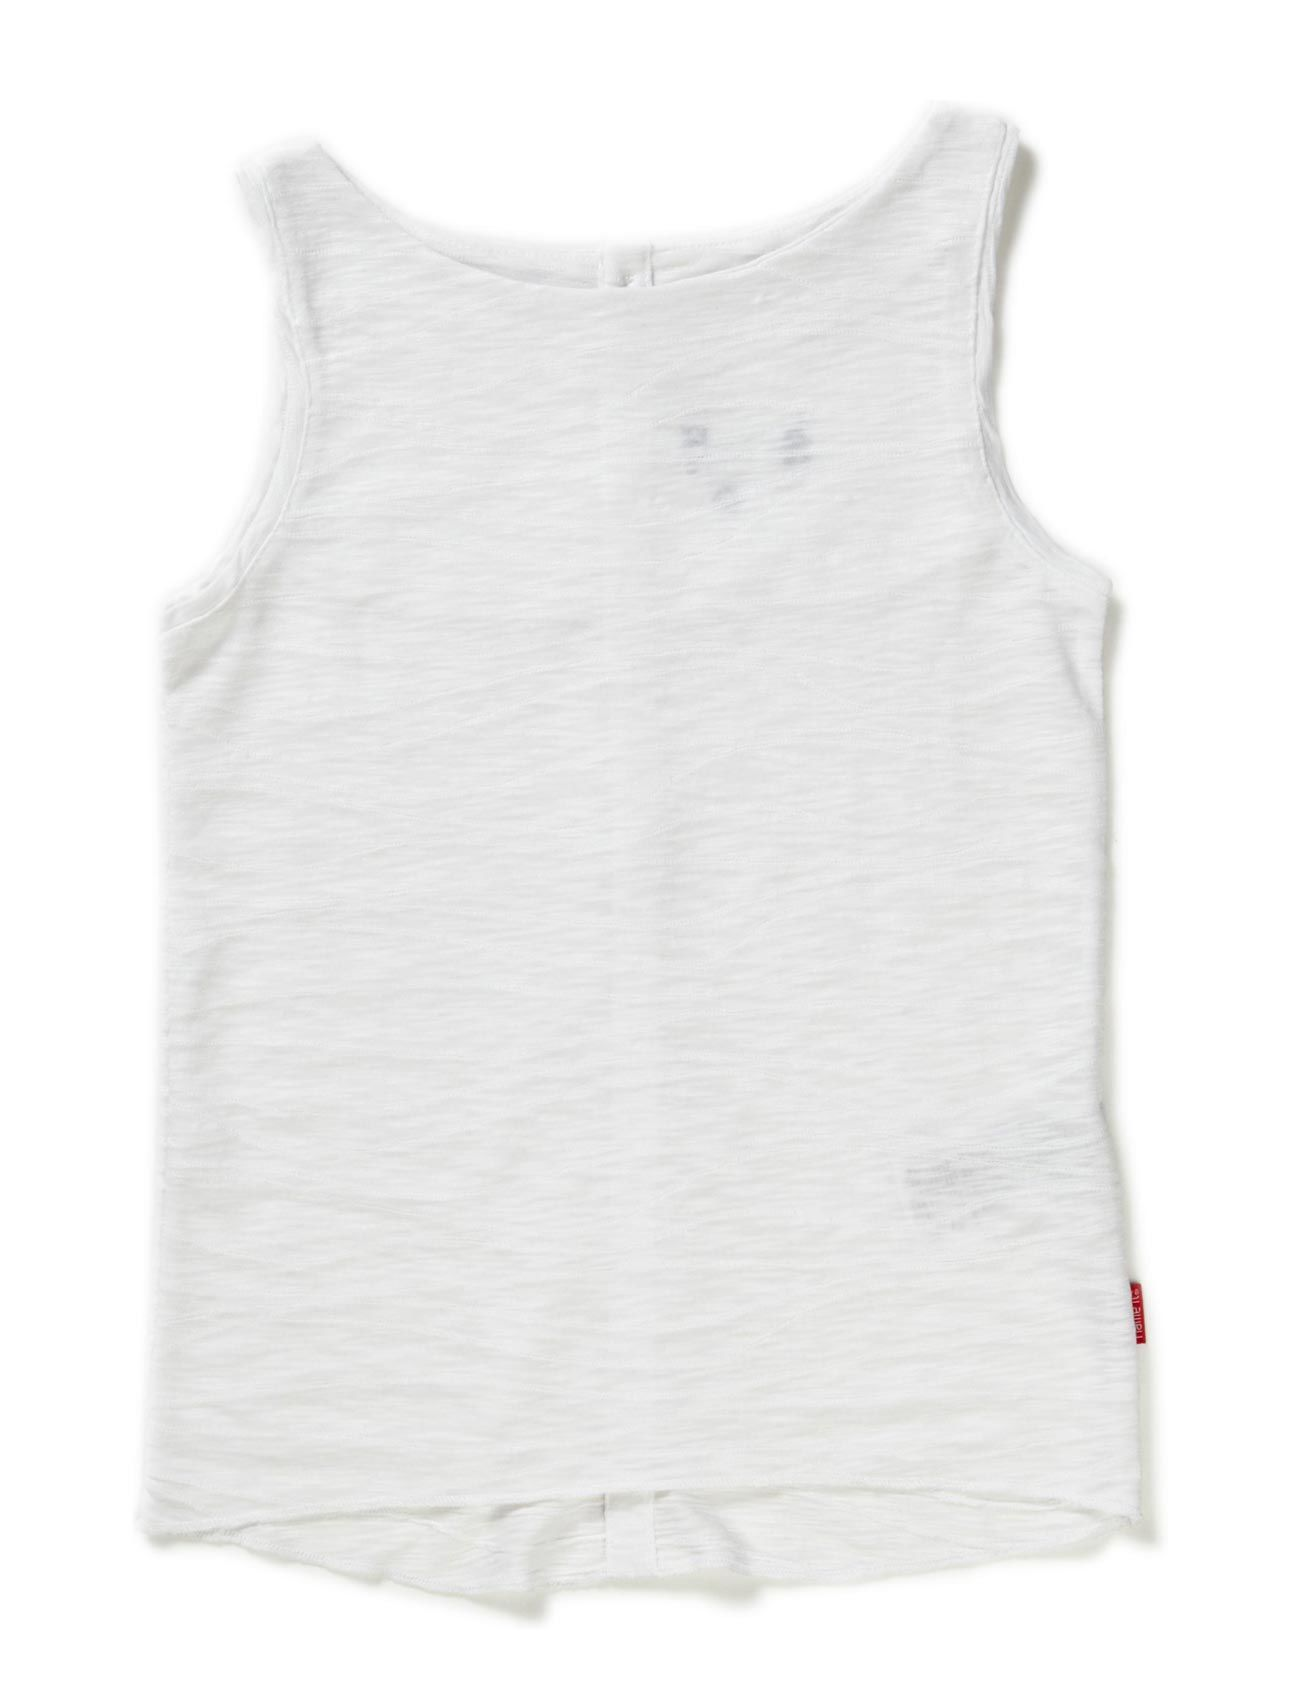 Haztex Kids Tank Top 214